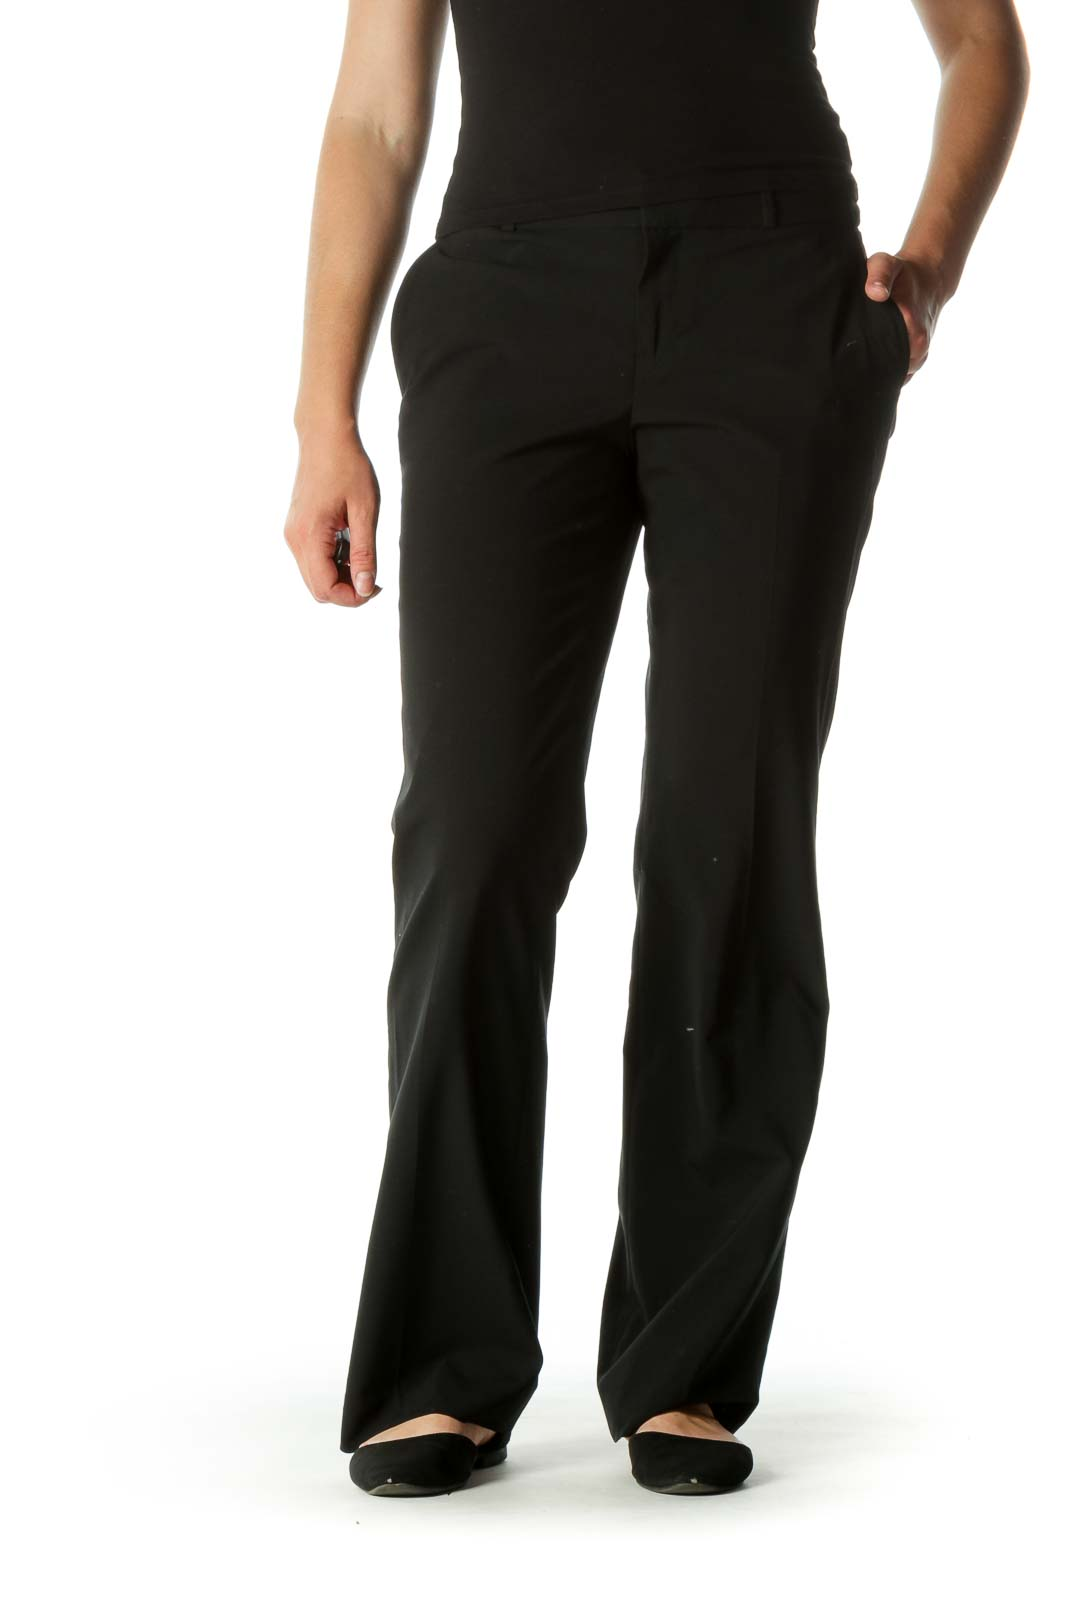 Black Wool Blend Straight Pocketed Leg Pants